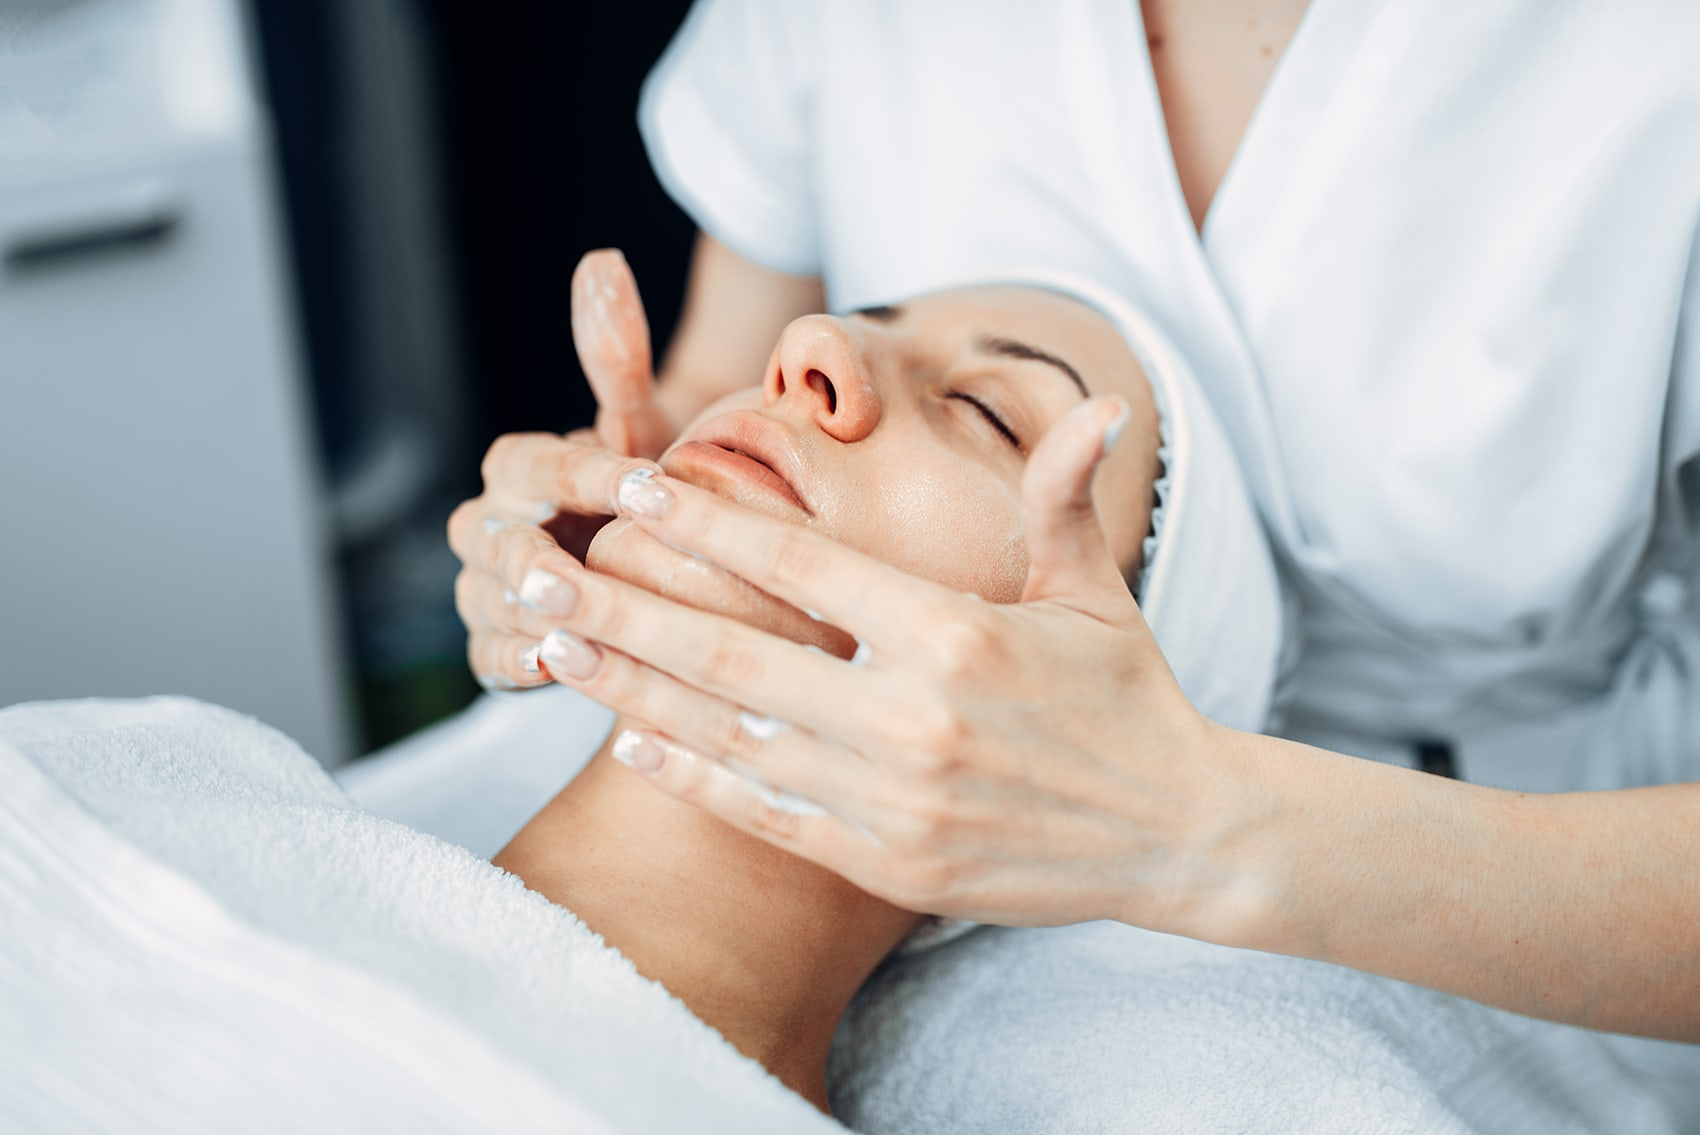 face-massage-to-female-patient-cosmetology-clinic-JX7YEHZ.jpg